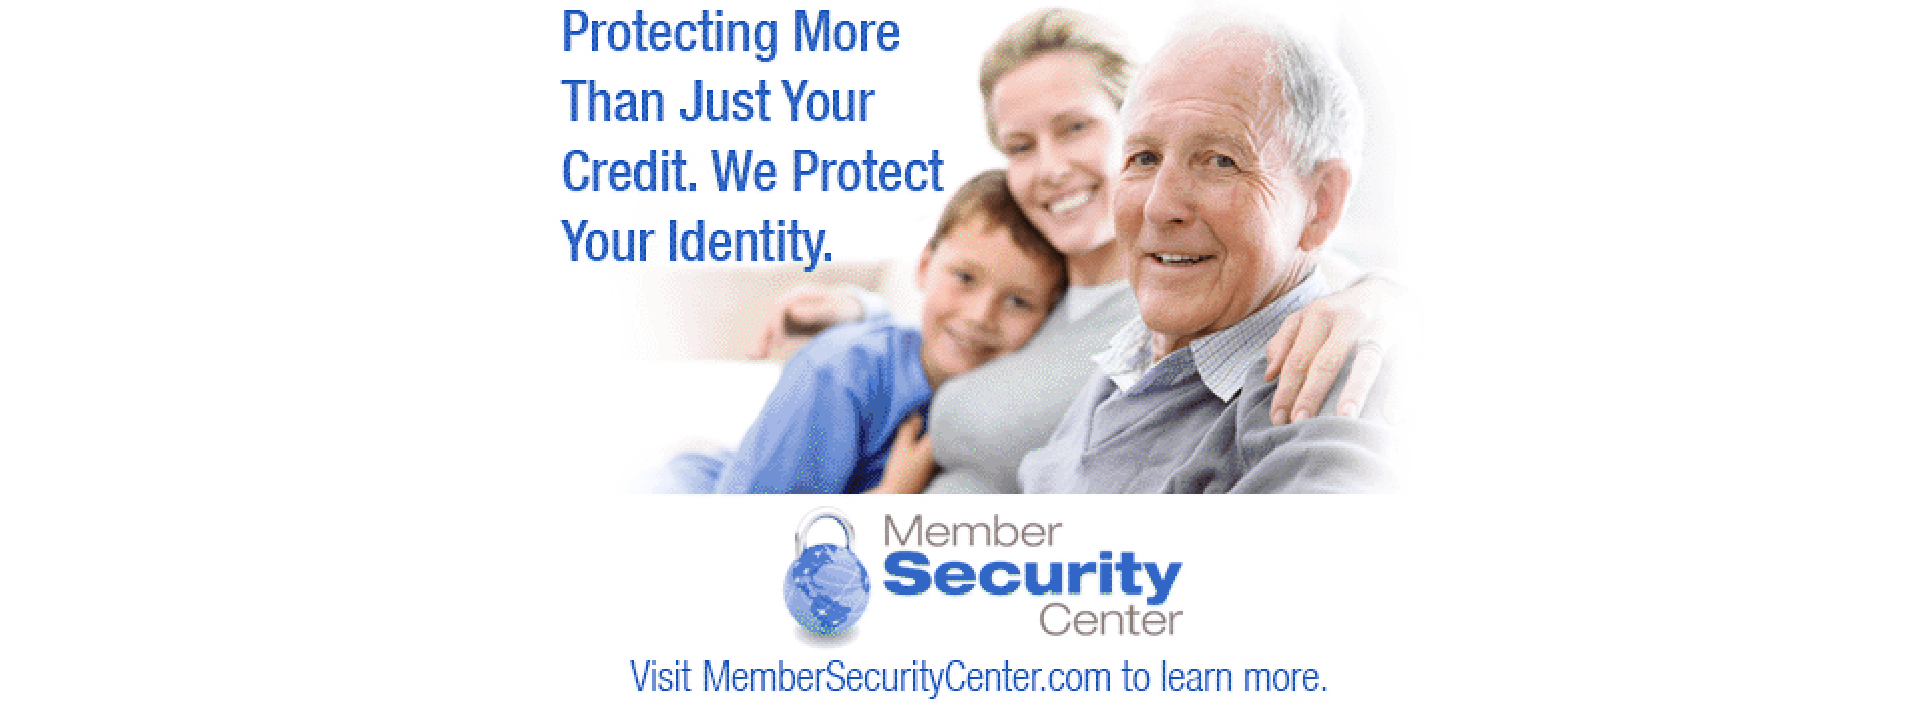 Protecting more than your credit. We protect your identity.